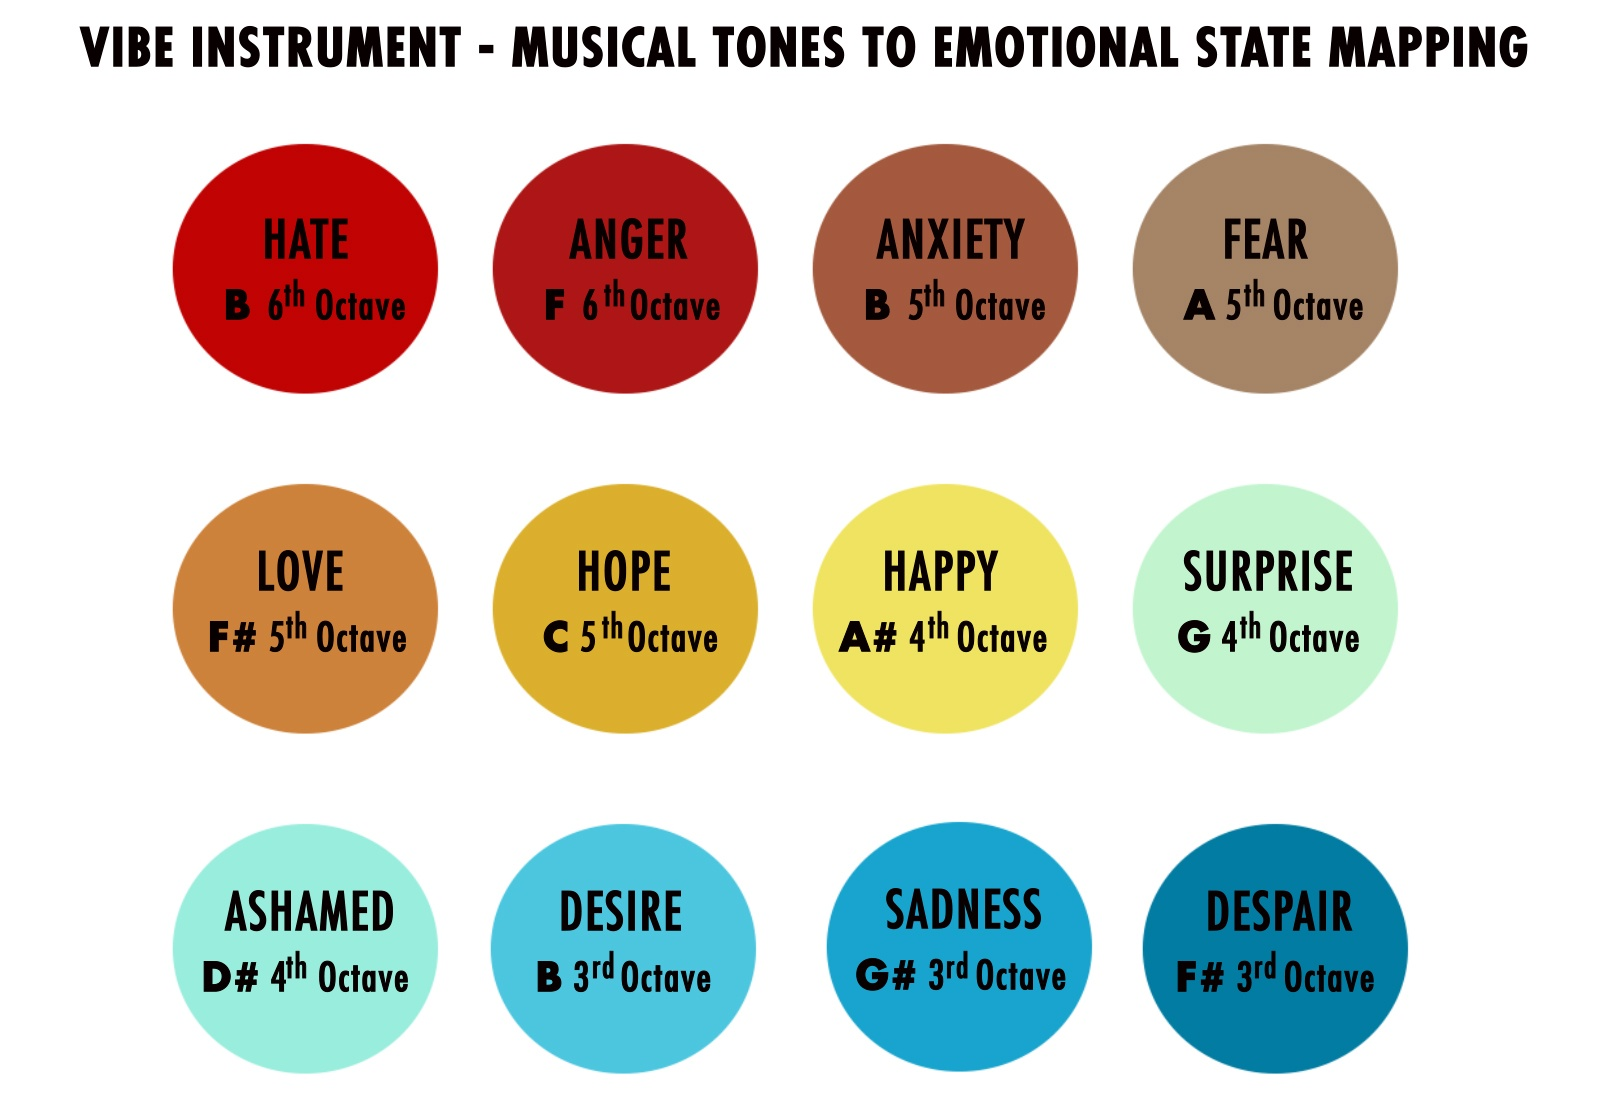 vibe-emotional_musical-mapping-1